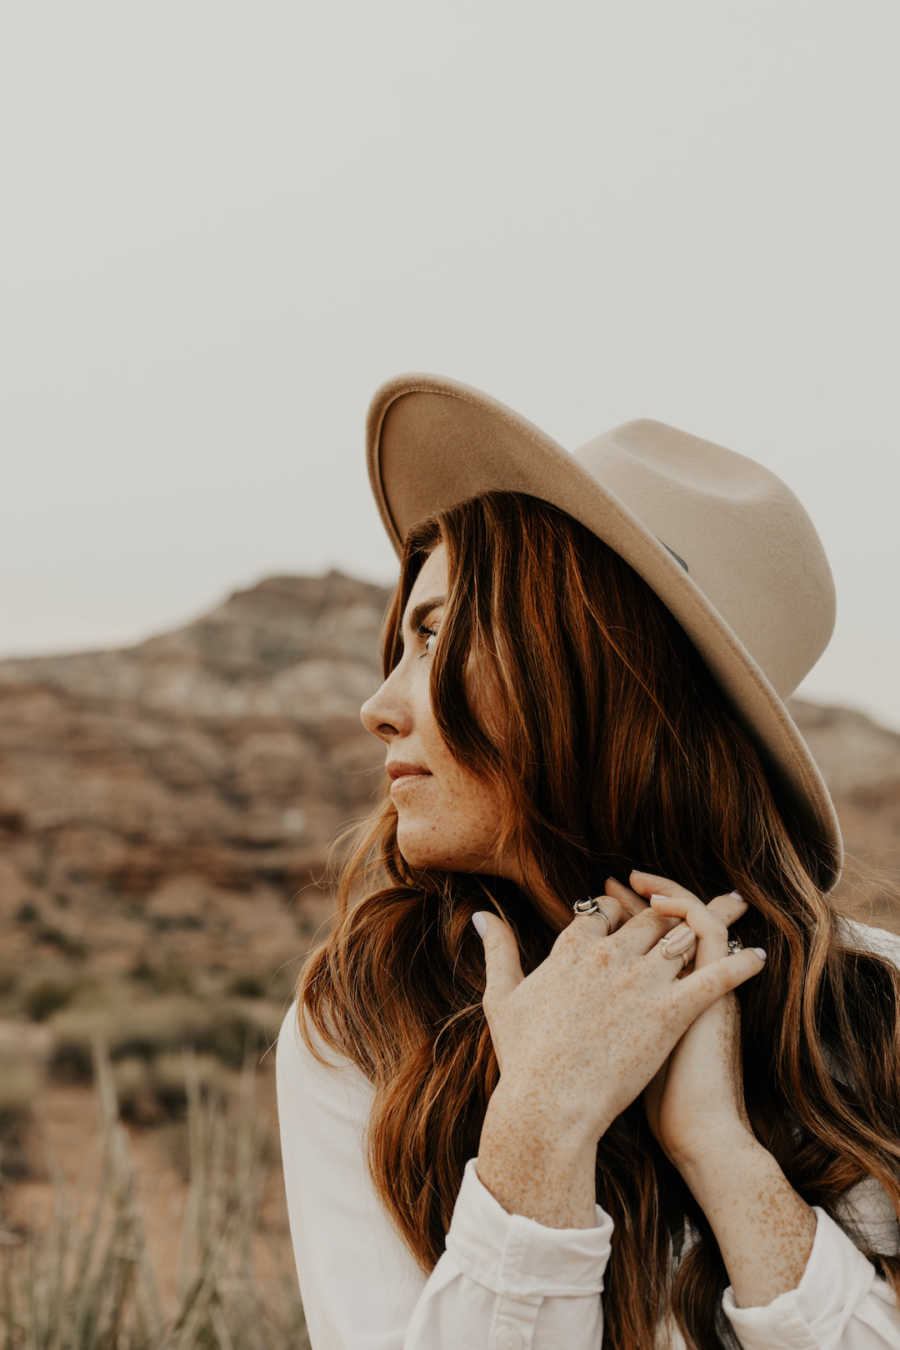 Woman wearing hat standing outside looking off into the distance